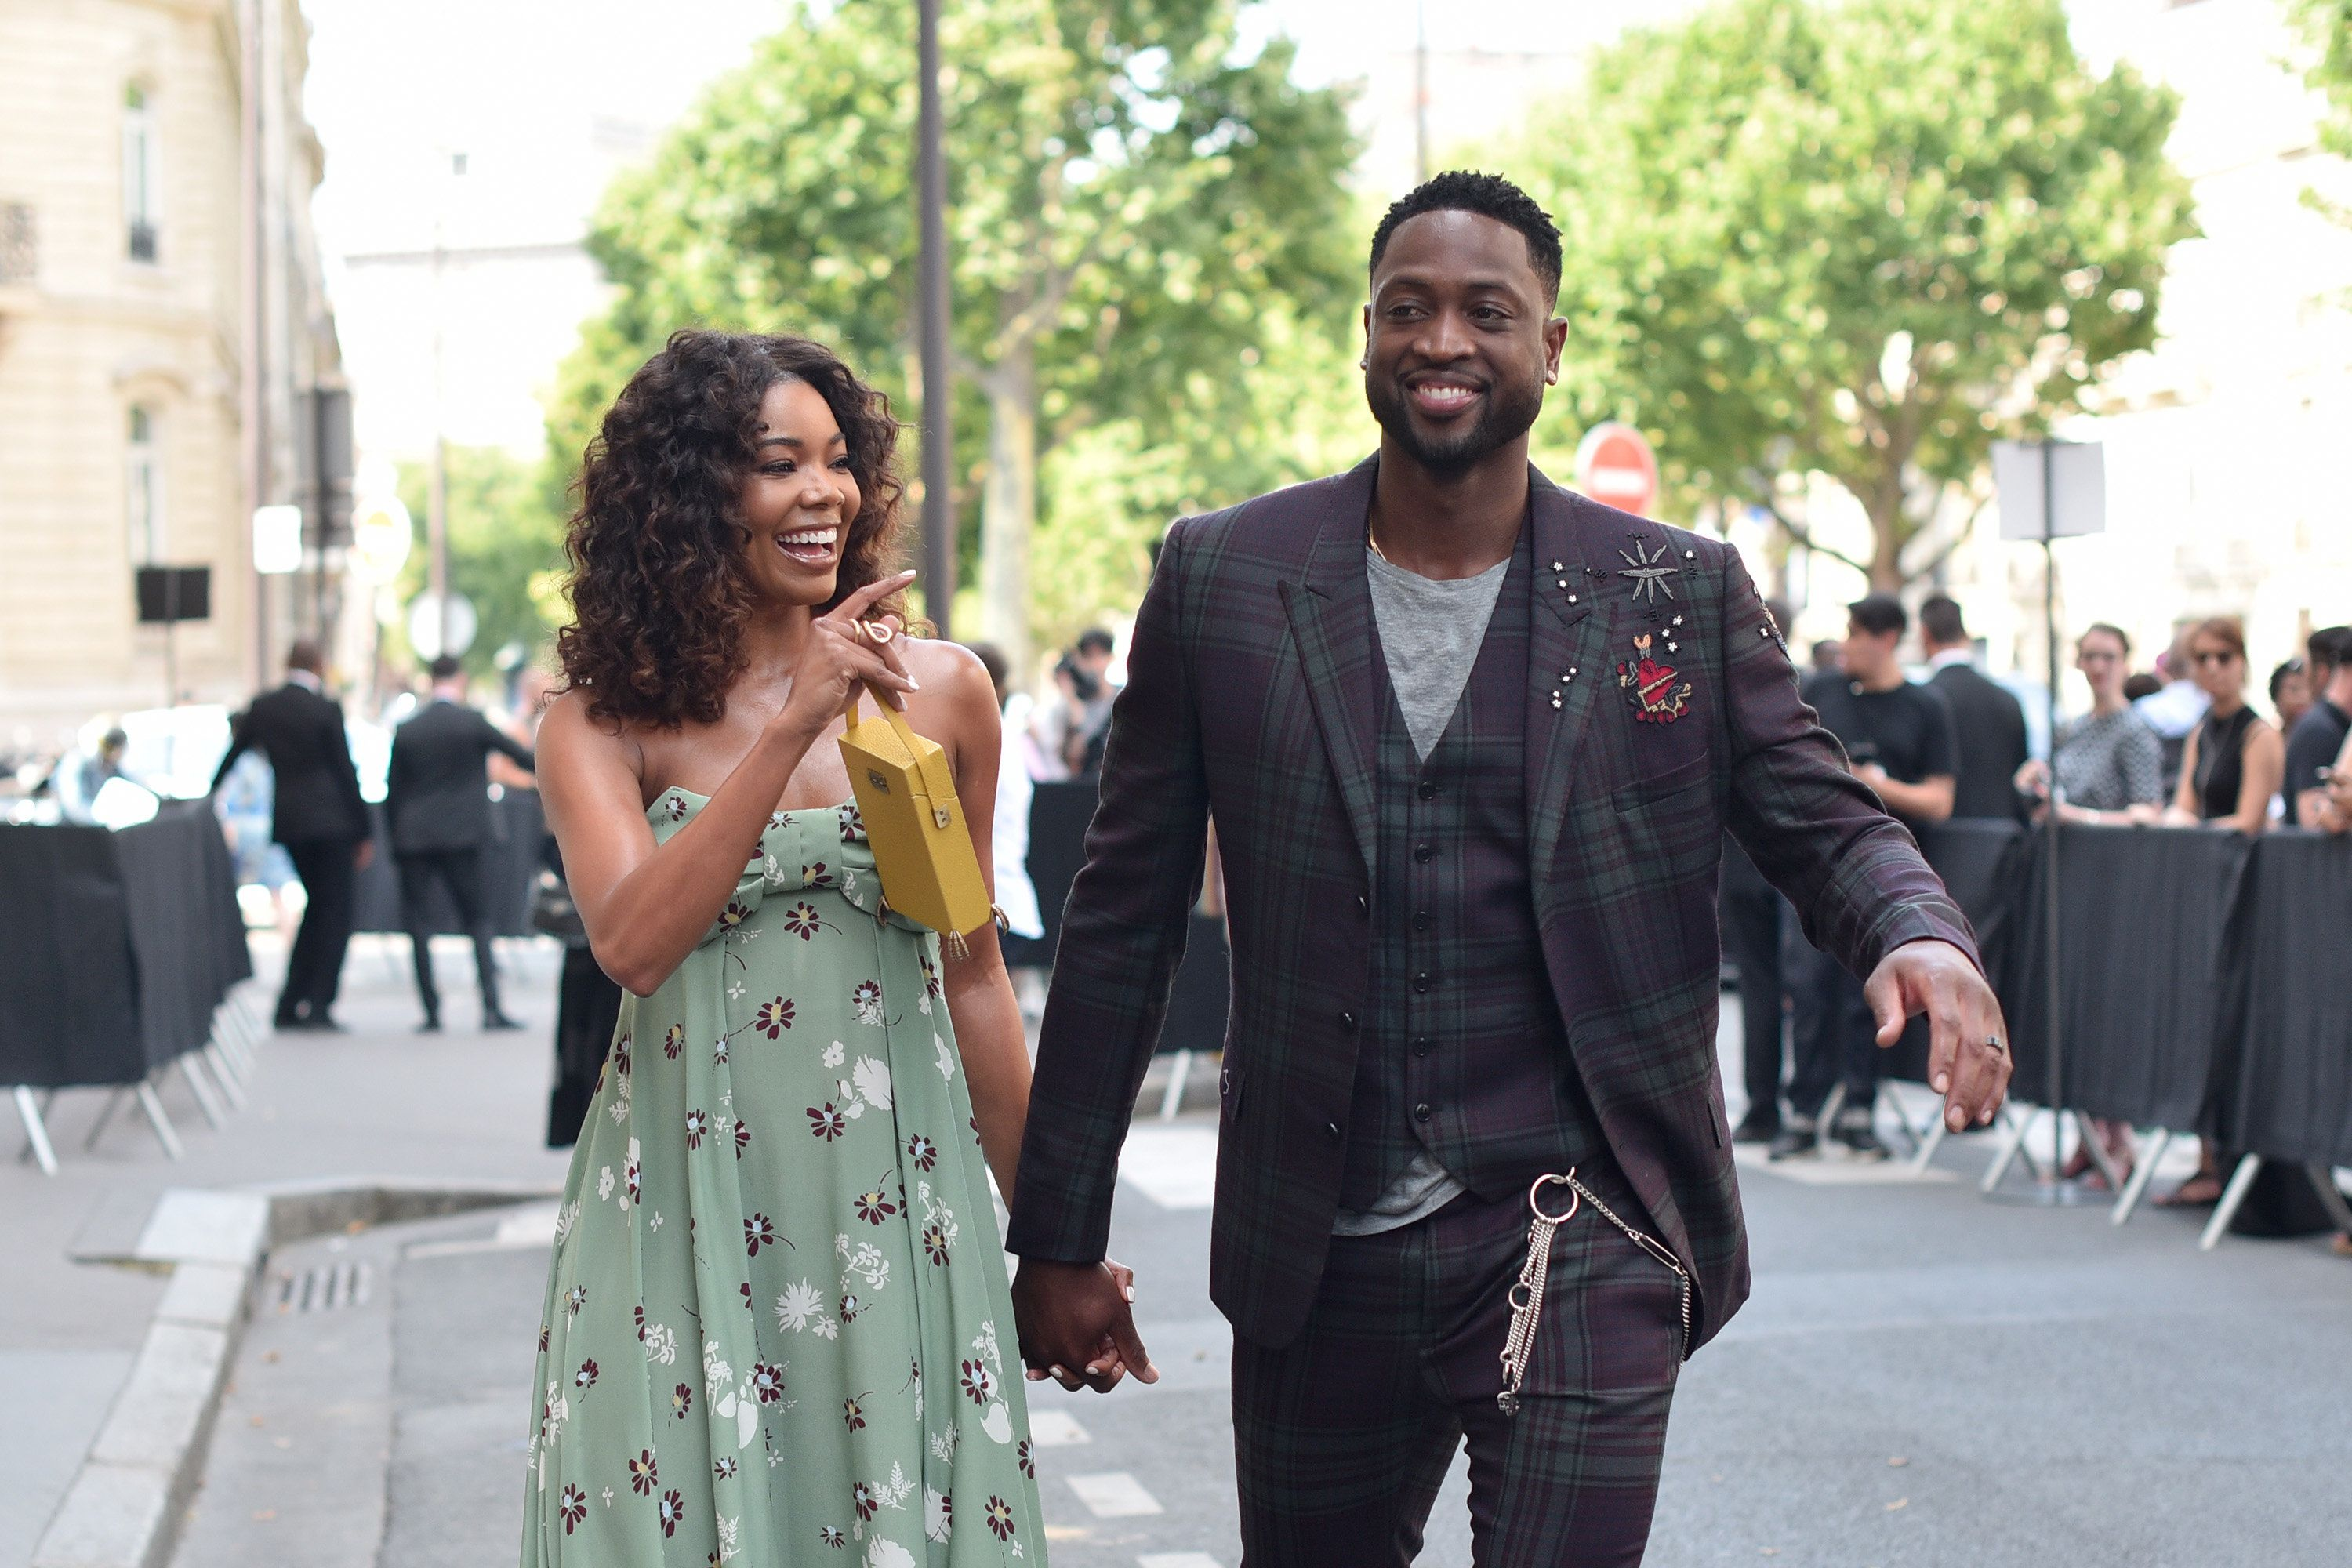 Gabrielle Union and Dwyane Wade may look like a picture-perfect couple, but they have their struggles too.